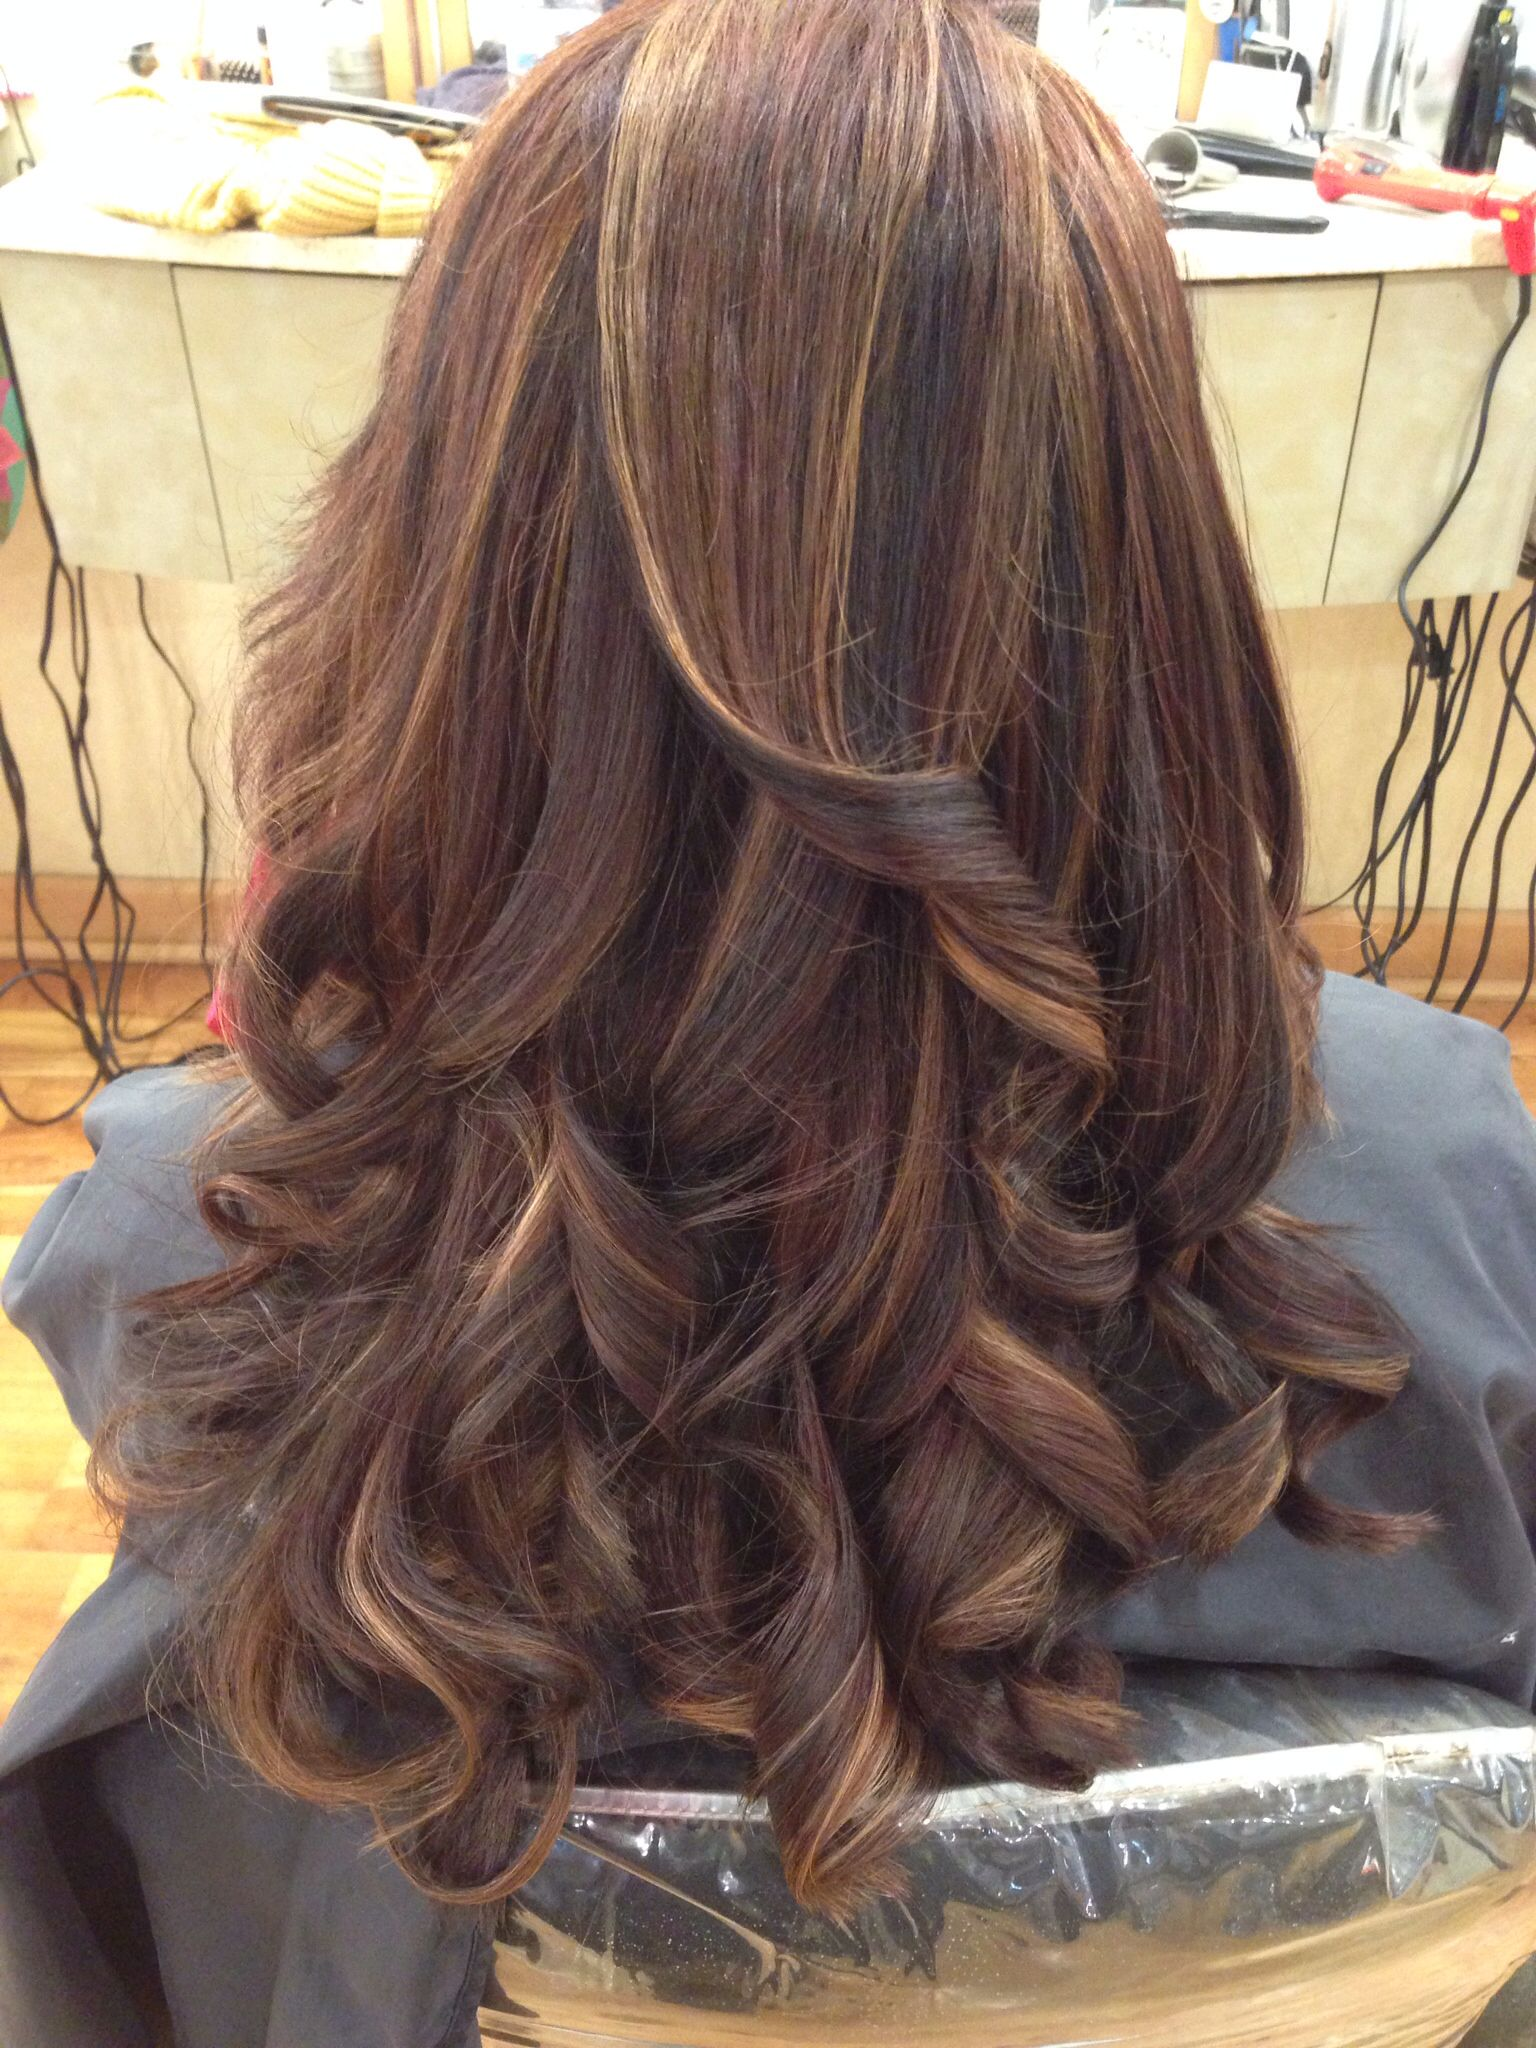 Full Head Foil Highlight And Lowlight After Hair Coloring